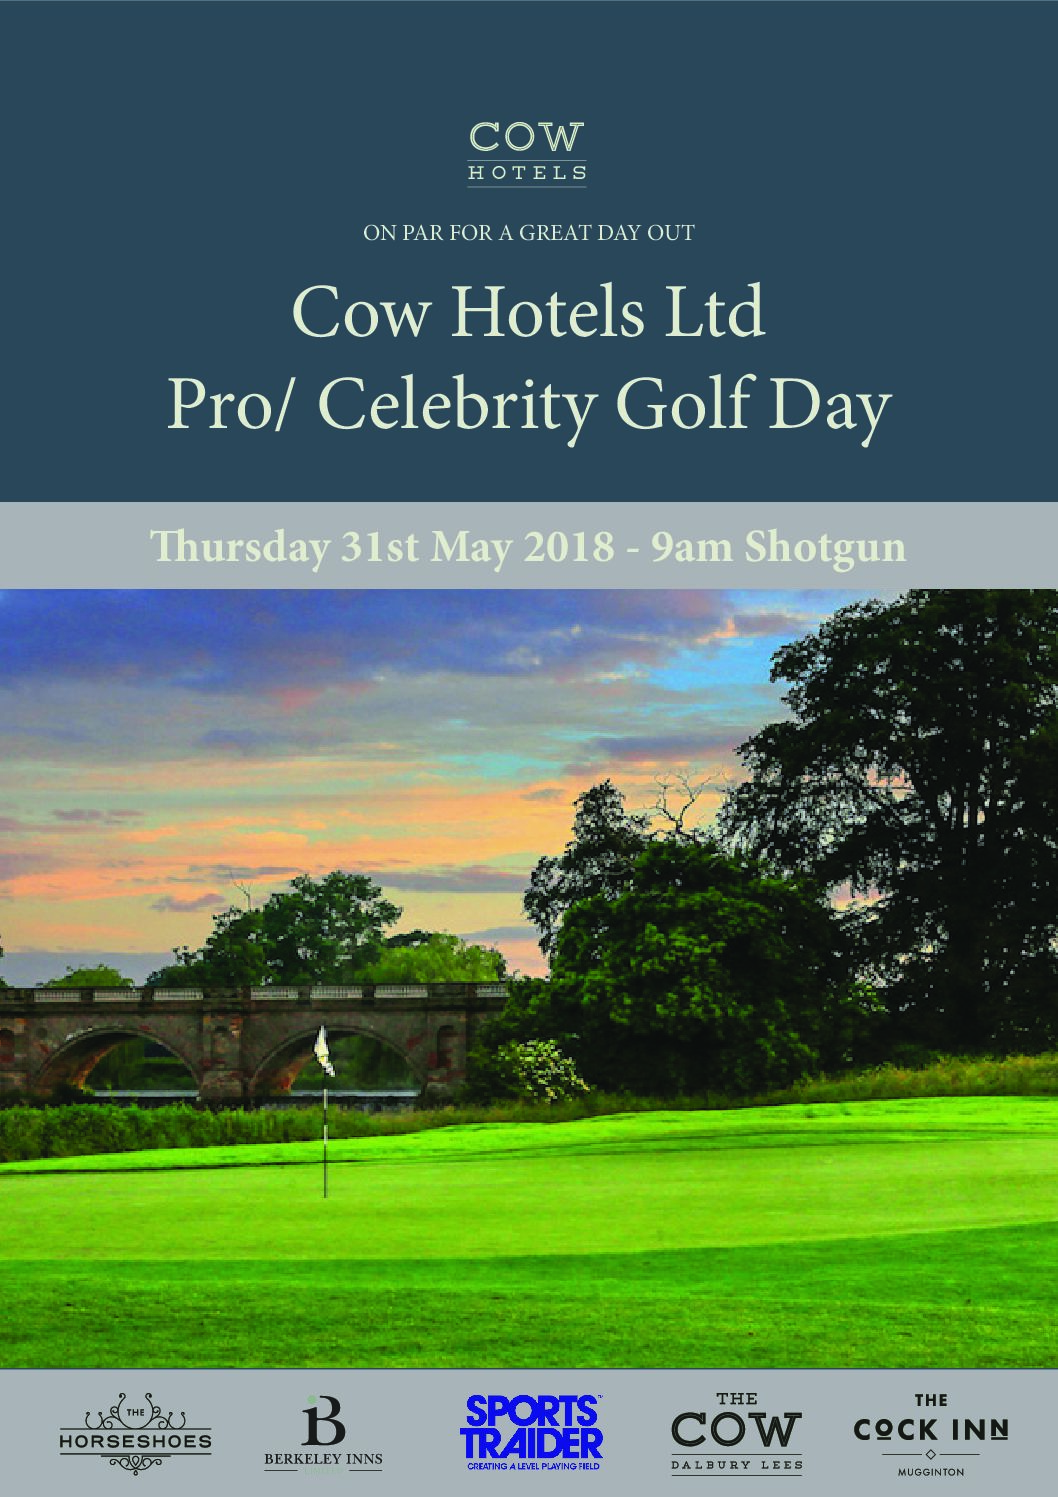 Cow Hotels Ltd Pro/Celebrity Golf Day